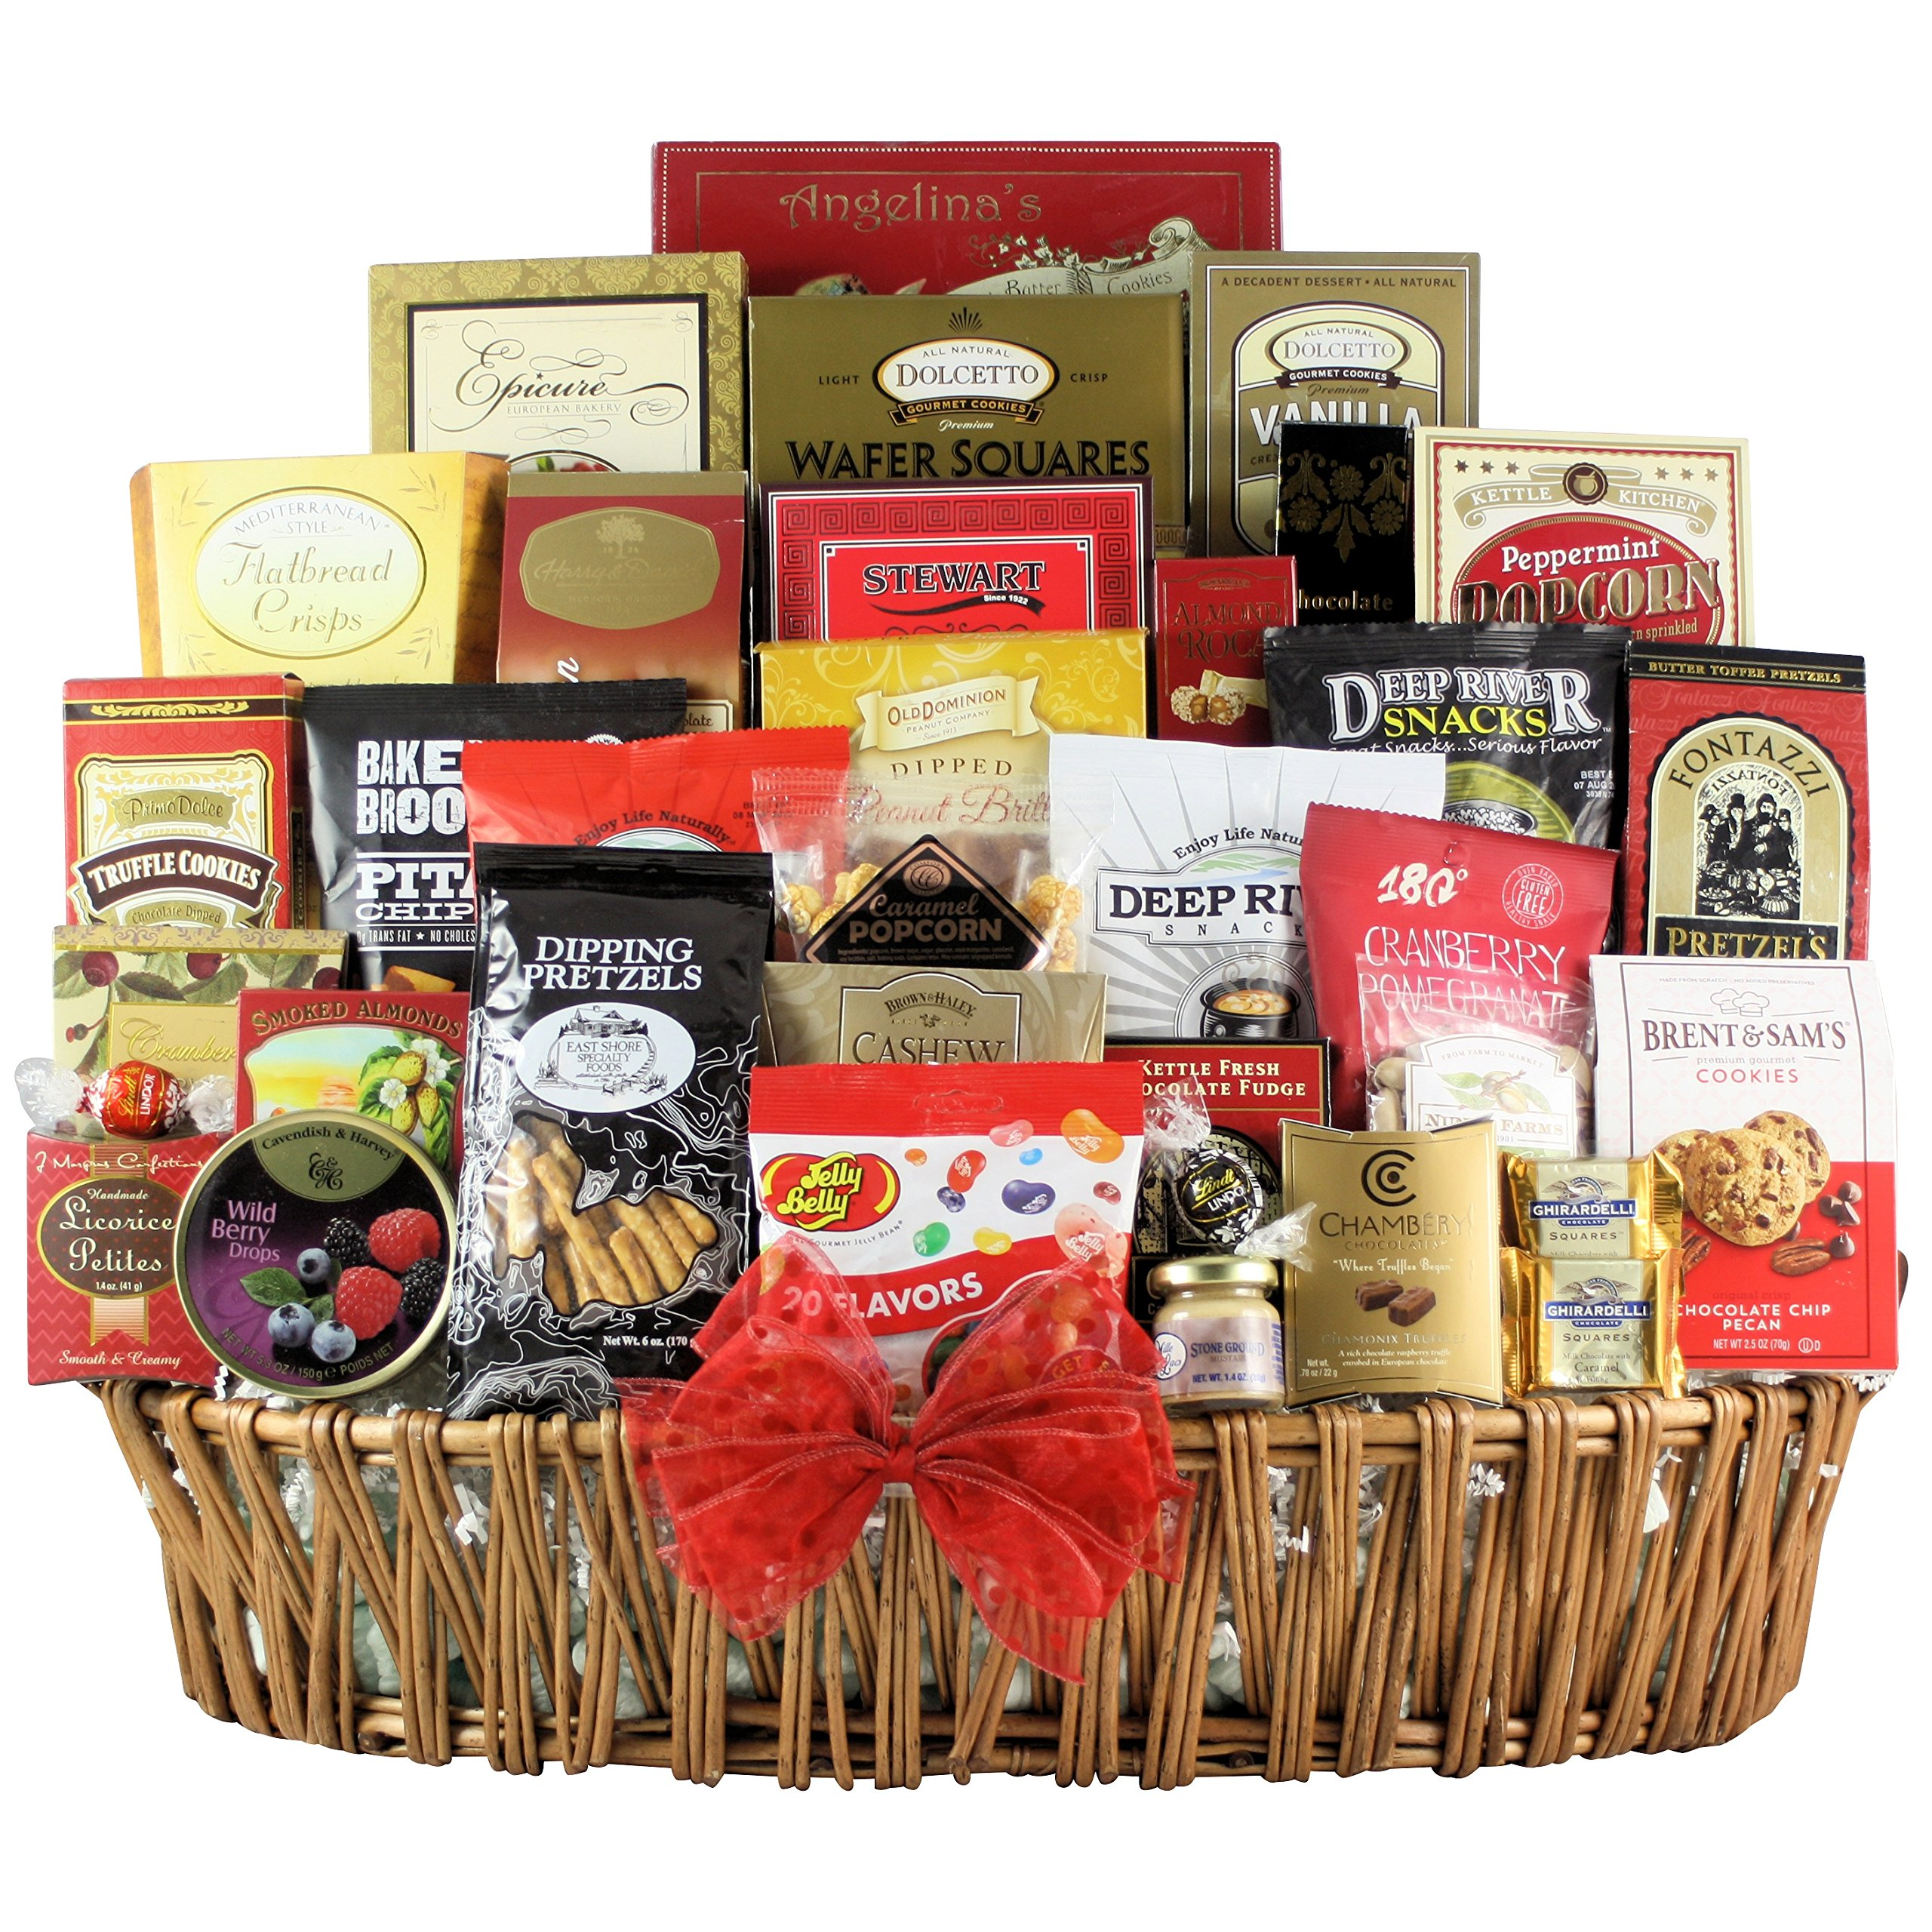 CDM product GreatArrivals Gift Baskets Magnificent Munchies: Thank You Snack Basket 5.9 Kilogram small thumbnail image